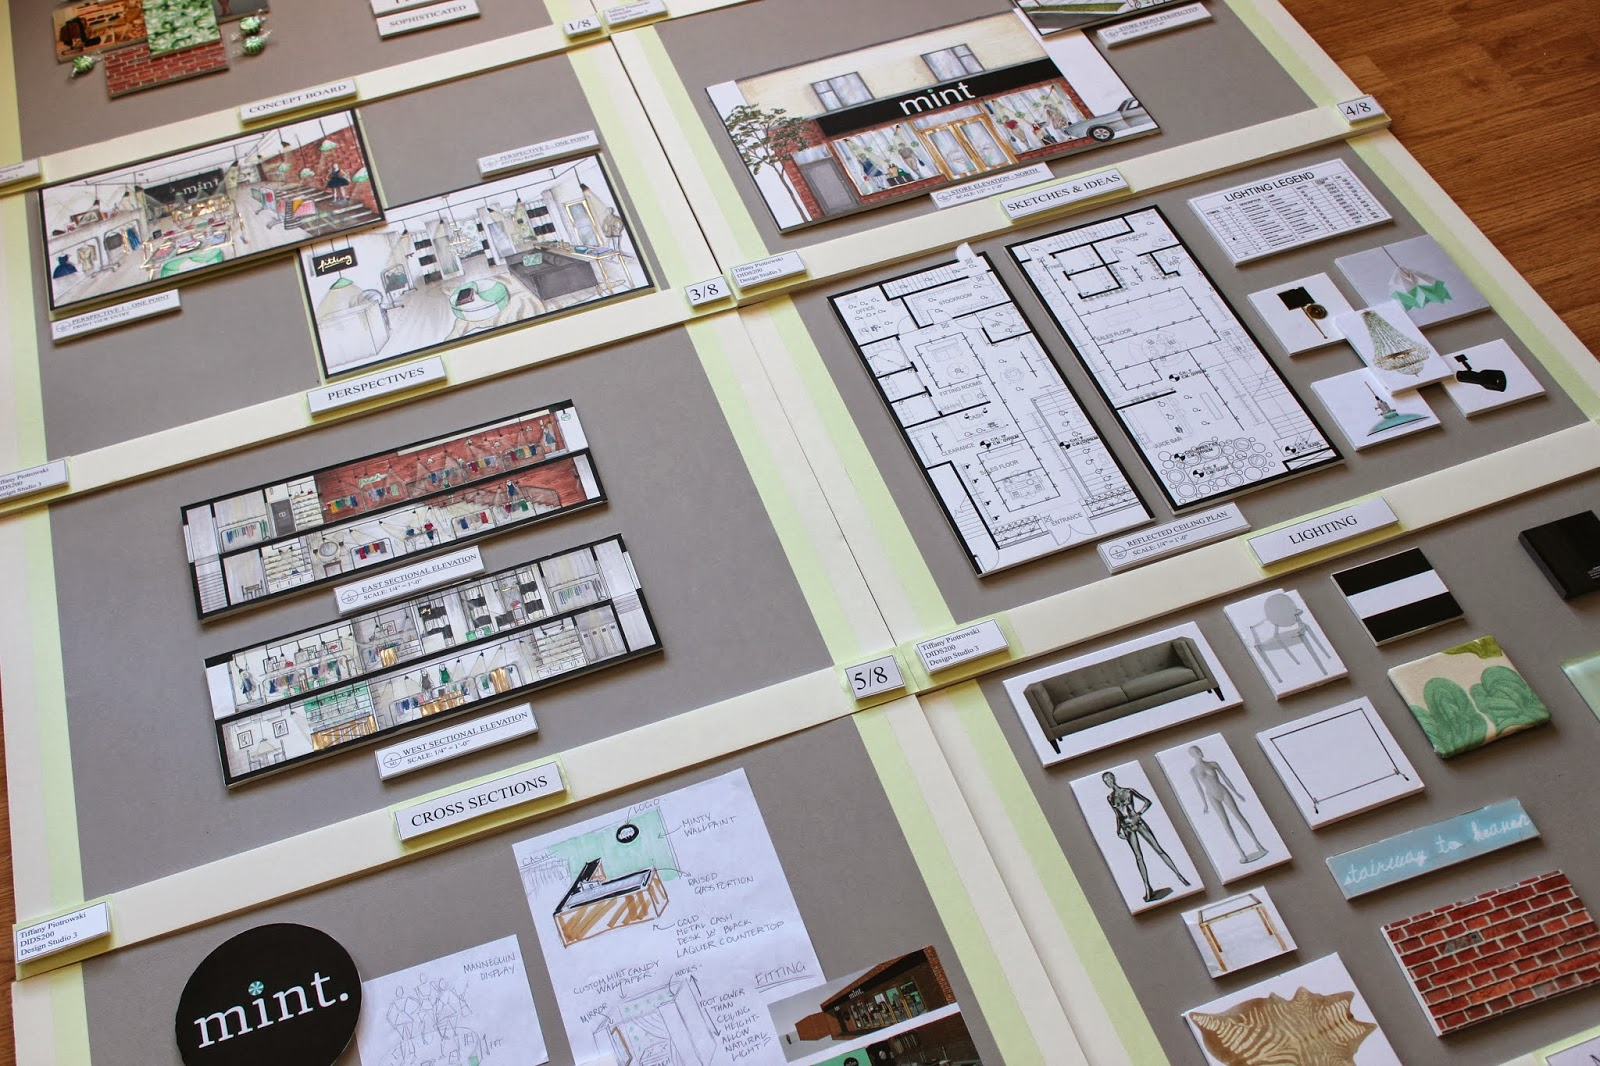 Term Four Final Project (& Tips for Creating your own Design Boards Architecture Home Design Board on hotel design boards, commercial design boards, architecture portfolio, transportation design boards, unique design boards, bathroom design boards, architecture board exam, coastal design boards, jewelry design boards, fireplaces boards, costume design boards, interior decorating design boards, award winning design boards, programming design boards, architectural drafting boards, design presentation boards, automotive design boards, product design boards, interior design sample boards, architect display boards,